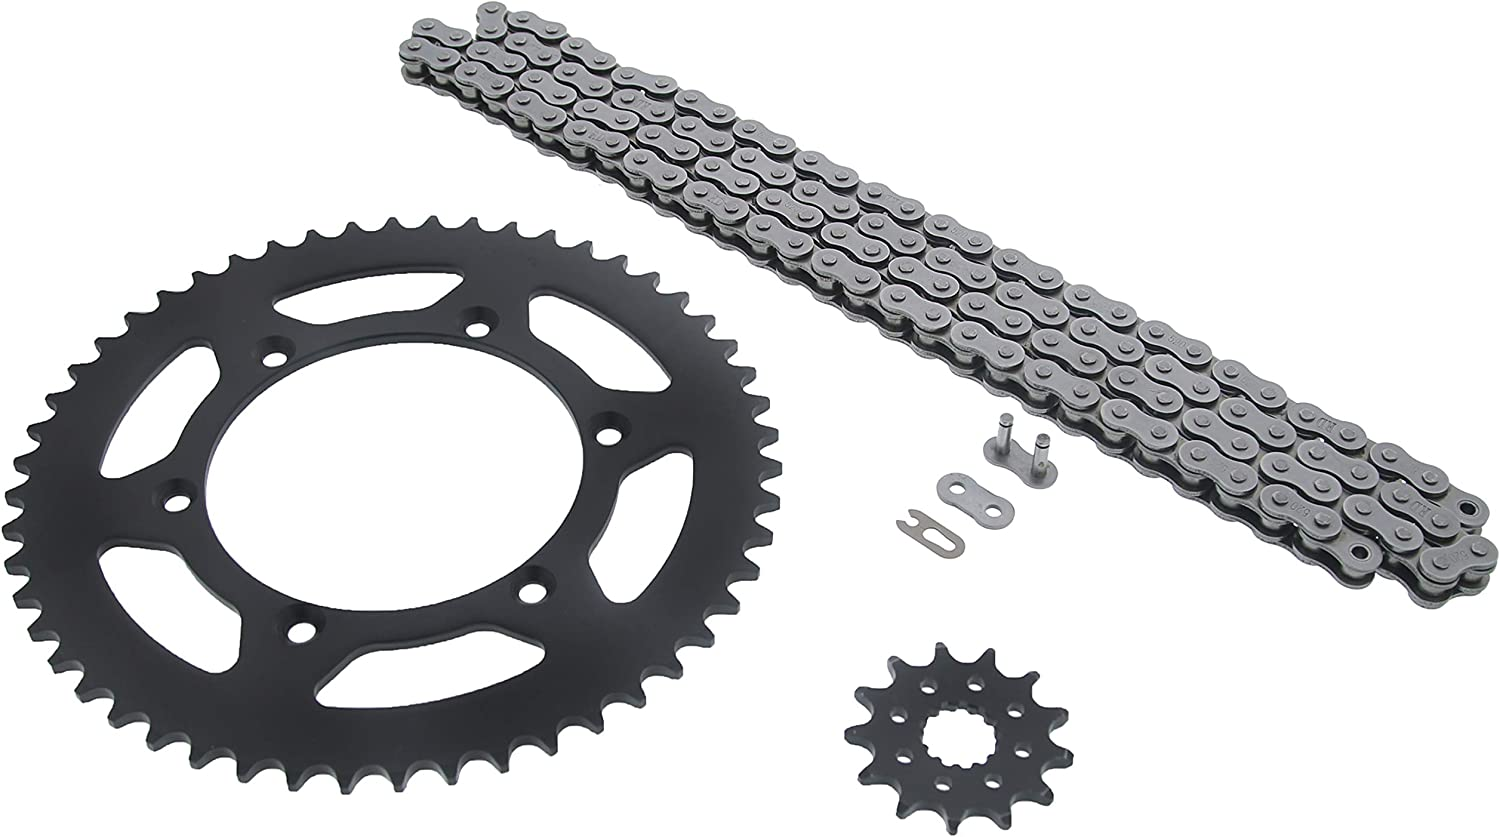 Non O Special price for a limited time Ring Chain Sprockets 2007-2014 2003-2004 YZ4 Yamaha fit Ranking TOP9